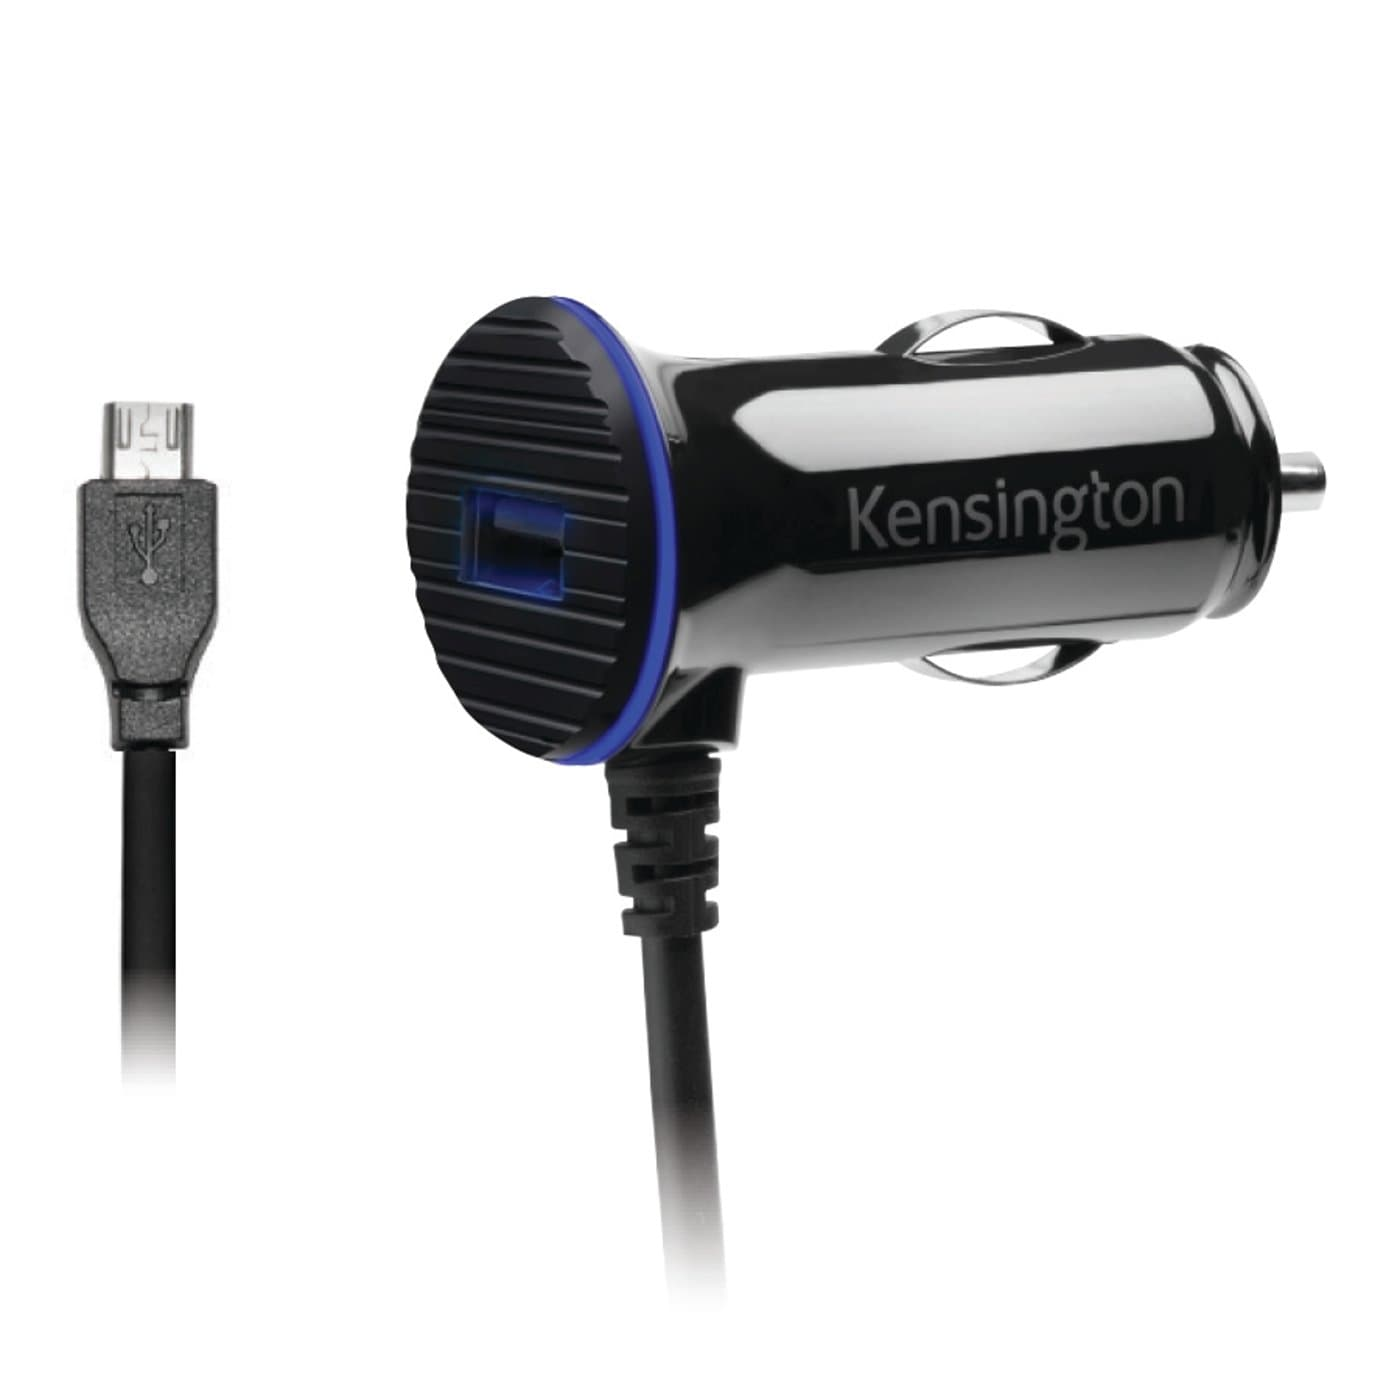 KENSINGTON PowerBolt™ 3.4 Dual Fast Charge Car Charger with Micro USB Cable K38119WW